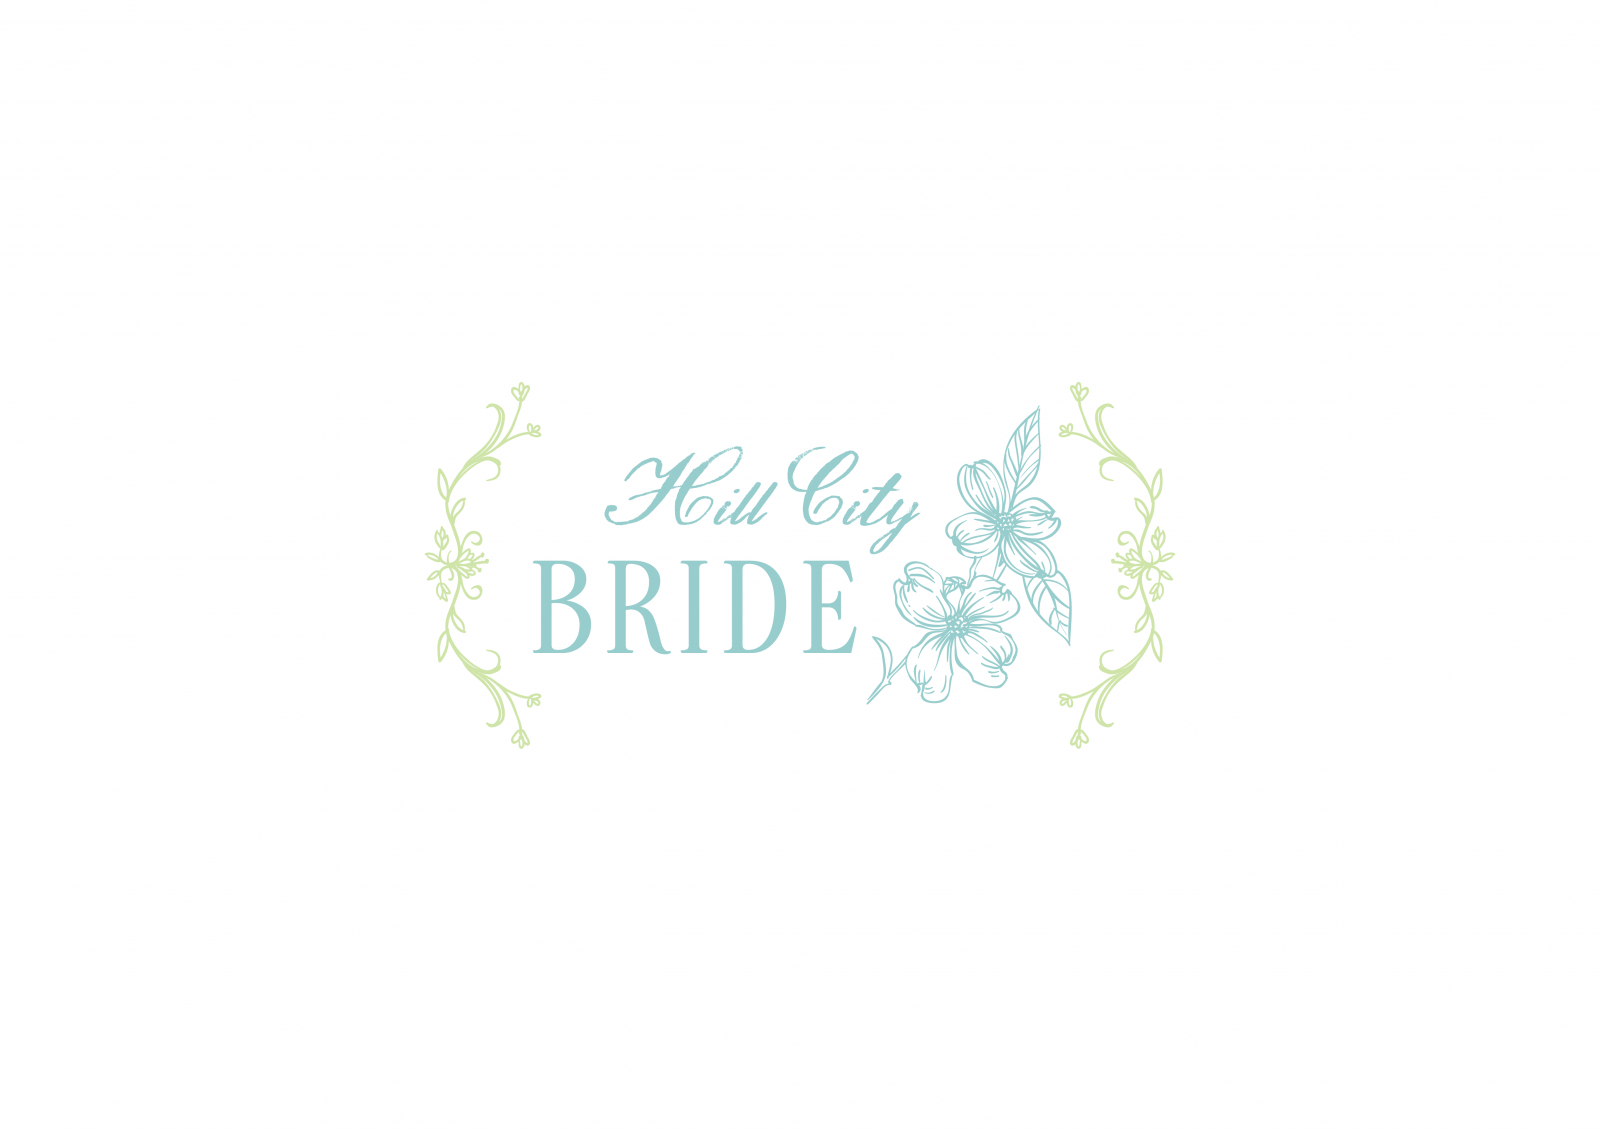 Hill City Bride Virginia Wedding Blog Logo